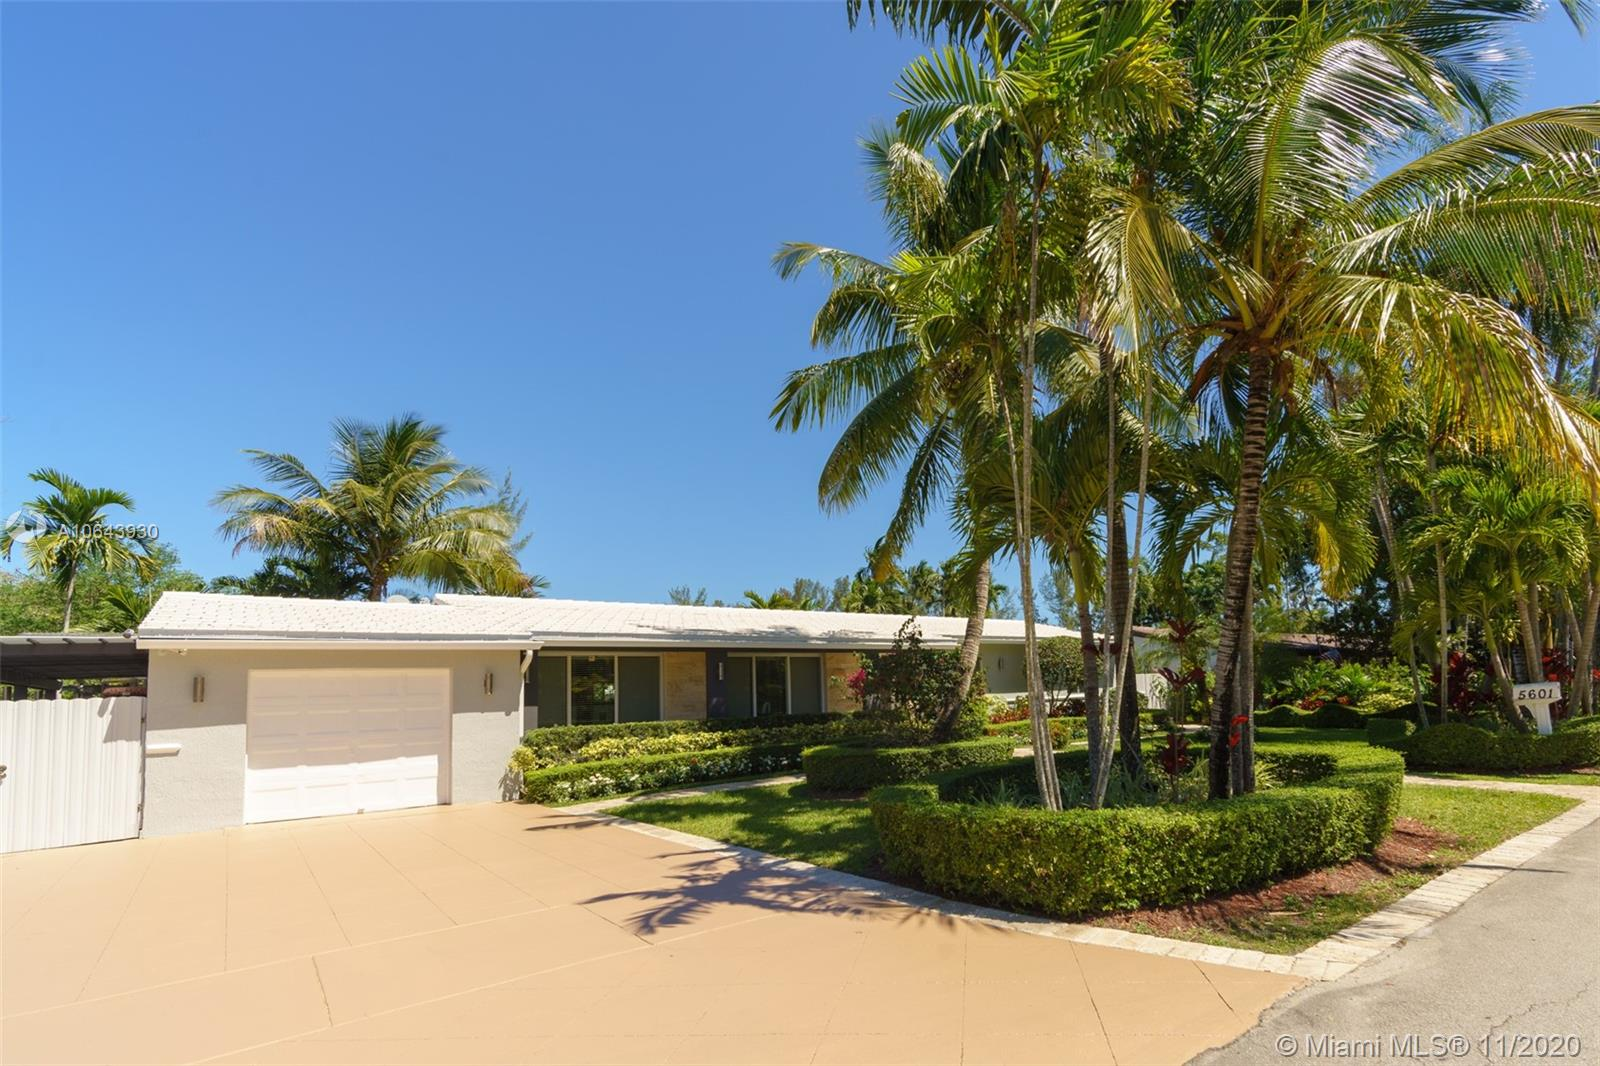 Come and fall in love with this completely remodeled dream home with 42 solar panels. This house has super bright 3/2 plus 1/1 cabana room with its closet and bathroom. Move-in ready with Italian marble floors, remodeled kitchen, updated bathrooms, impact windows and doors. You'll love the outside area that includes a covered dining area with a full kitchen and beautiful pool and view. Driveway with ample parking space, and one car garage attached.